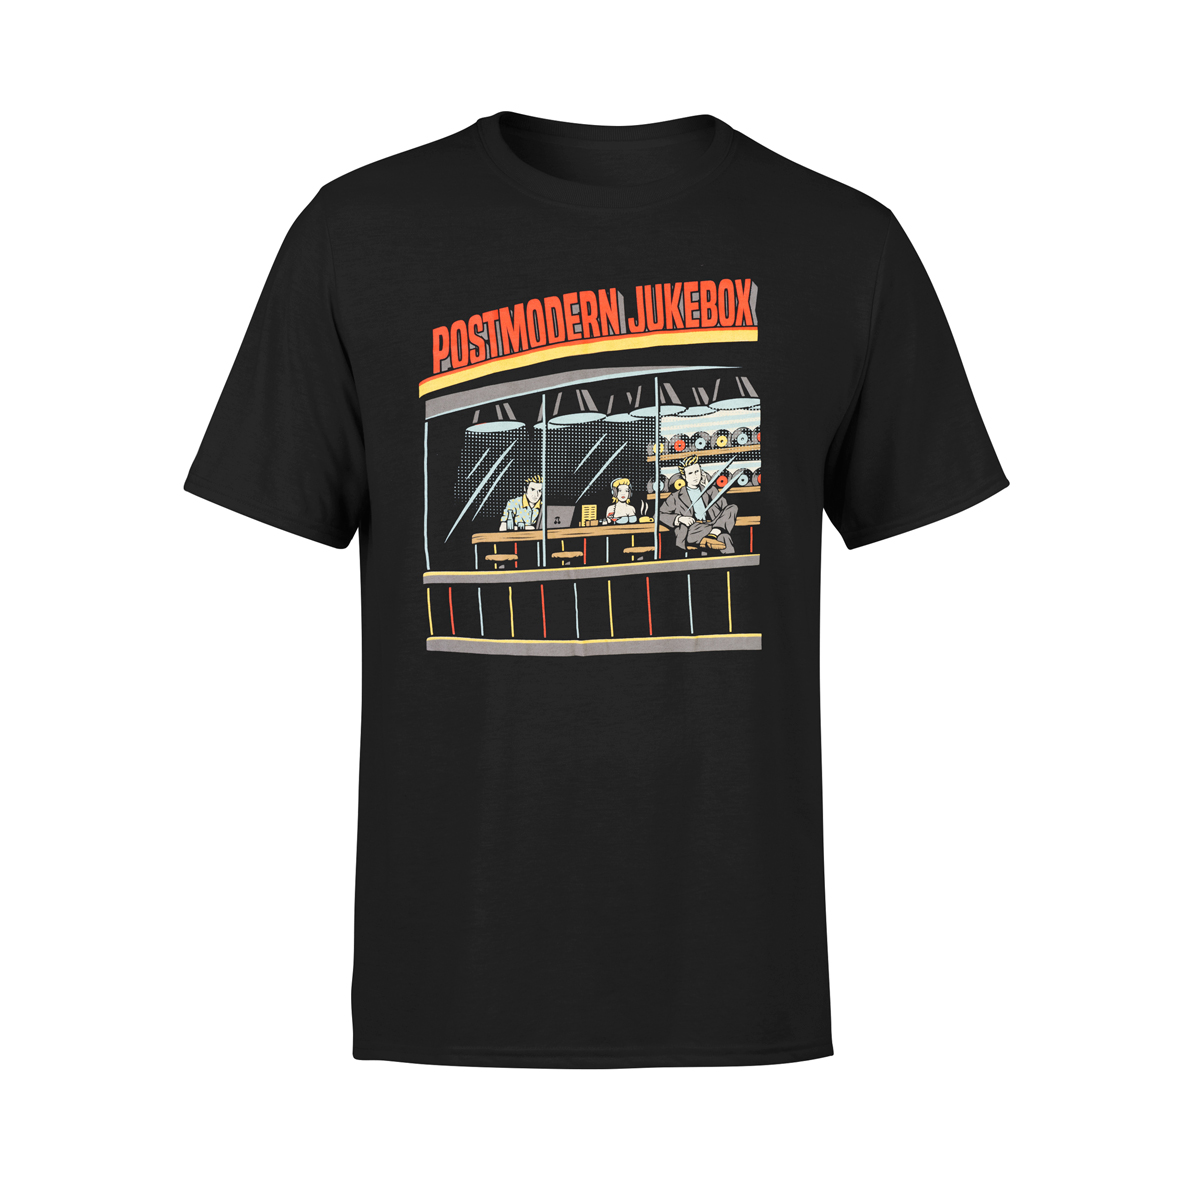 Diner Dated Tour Tee